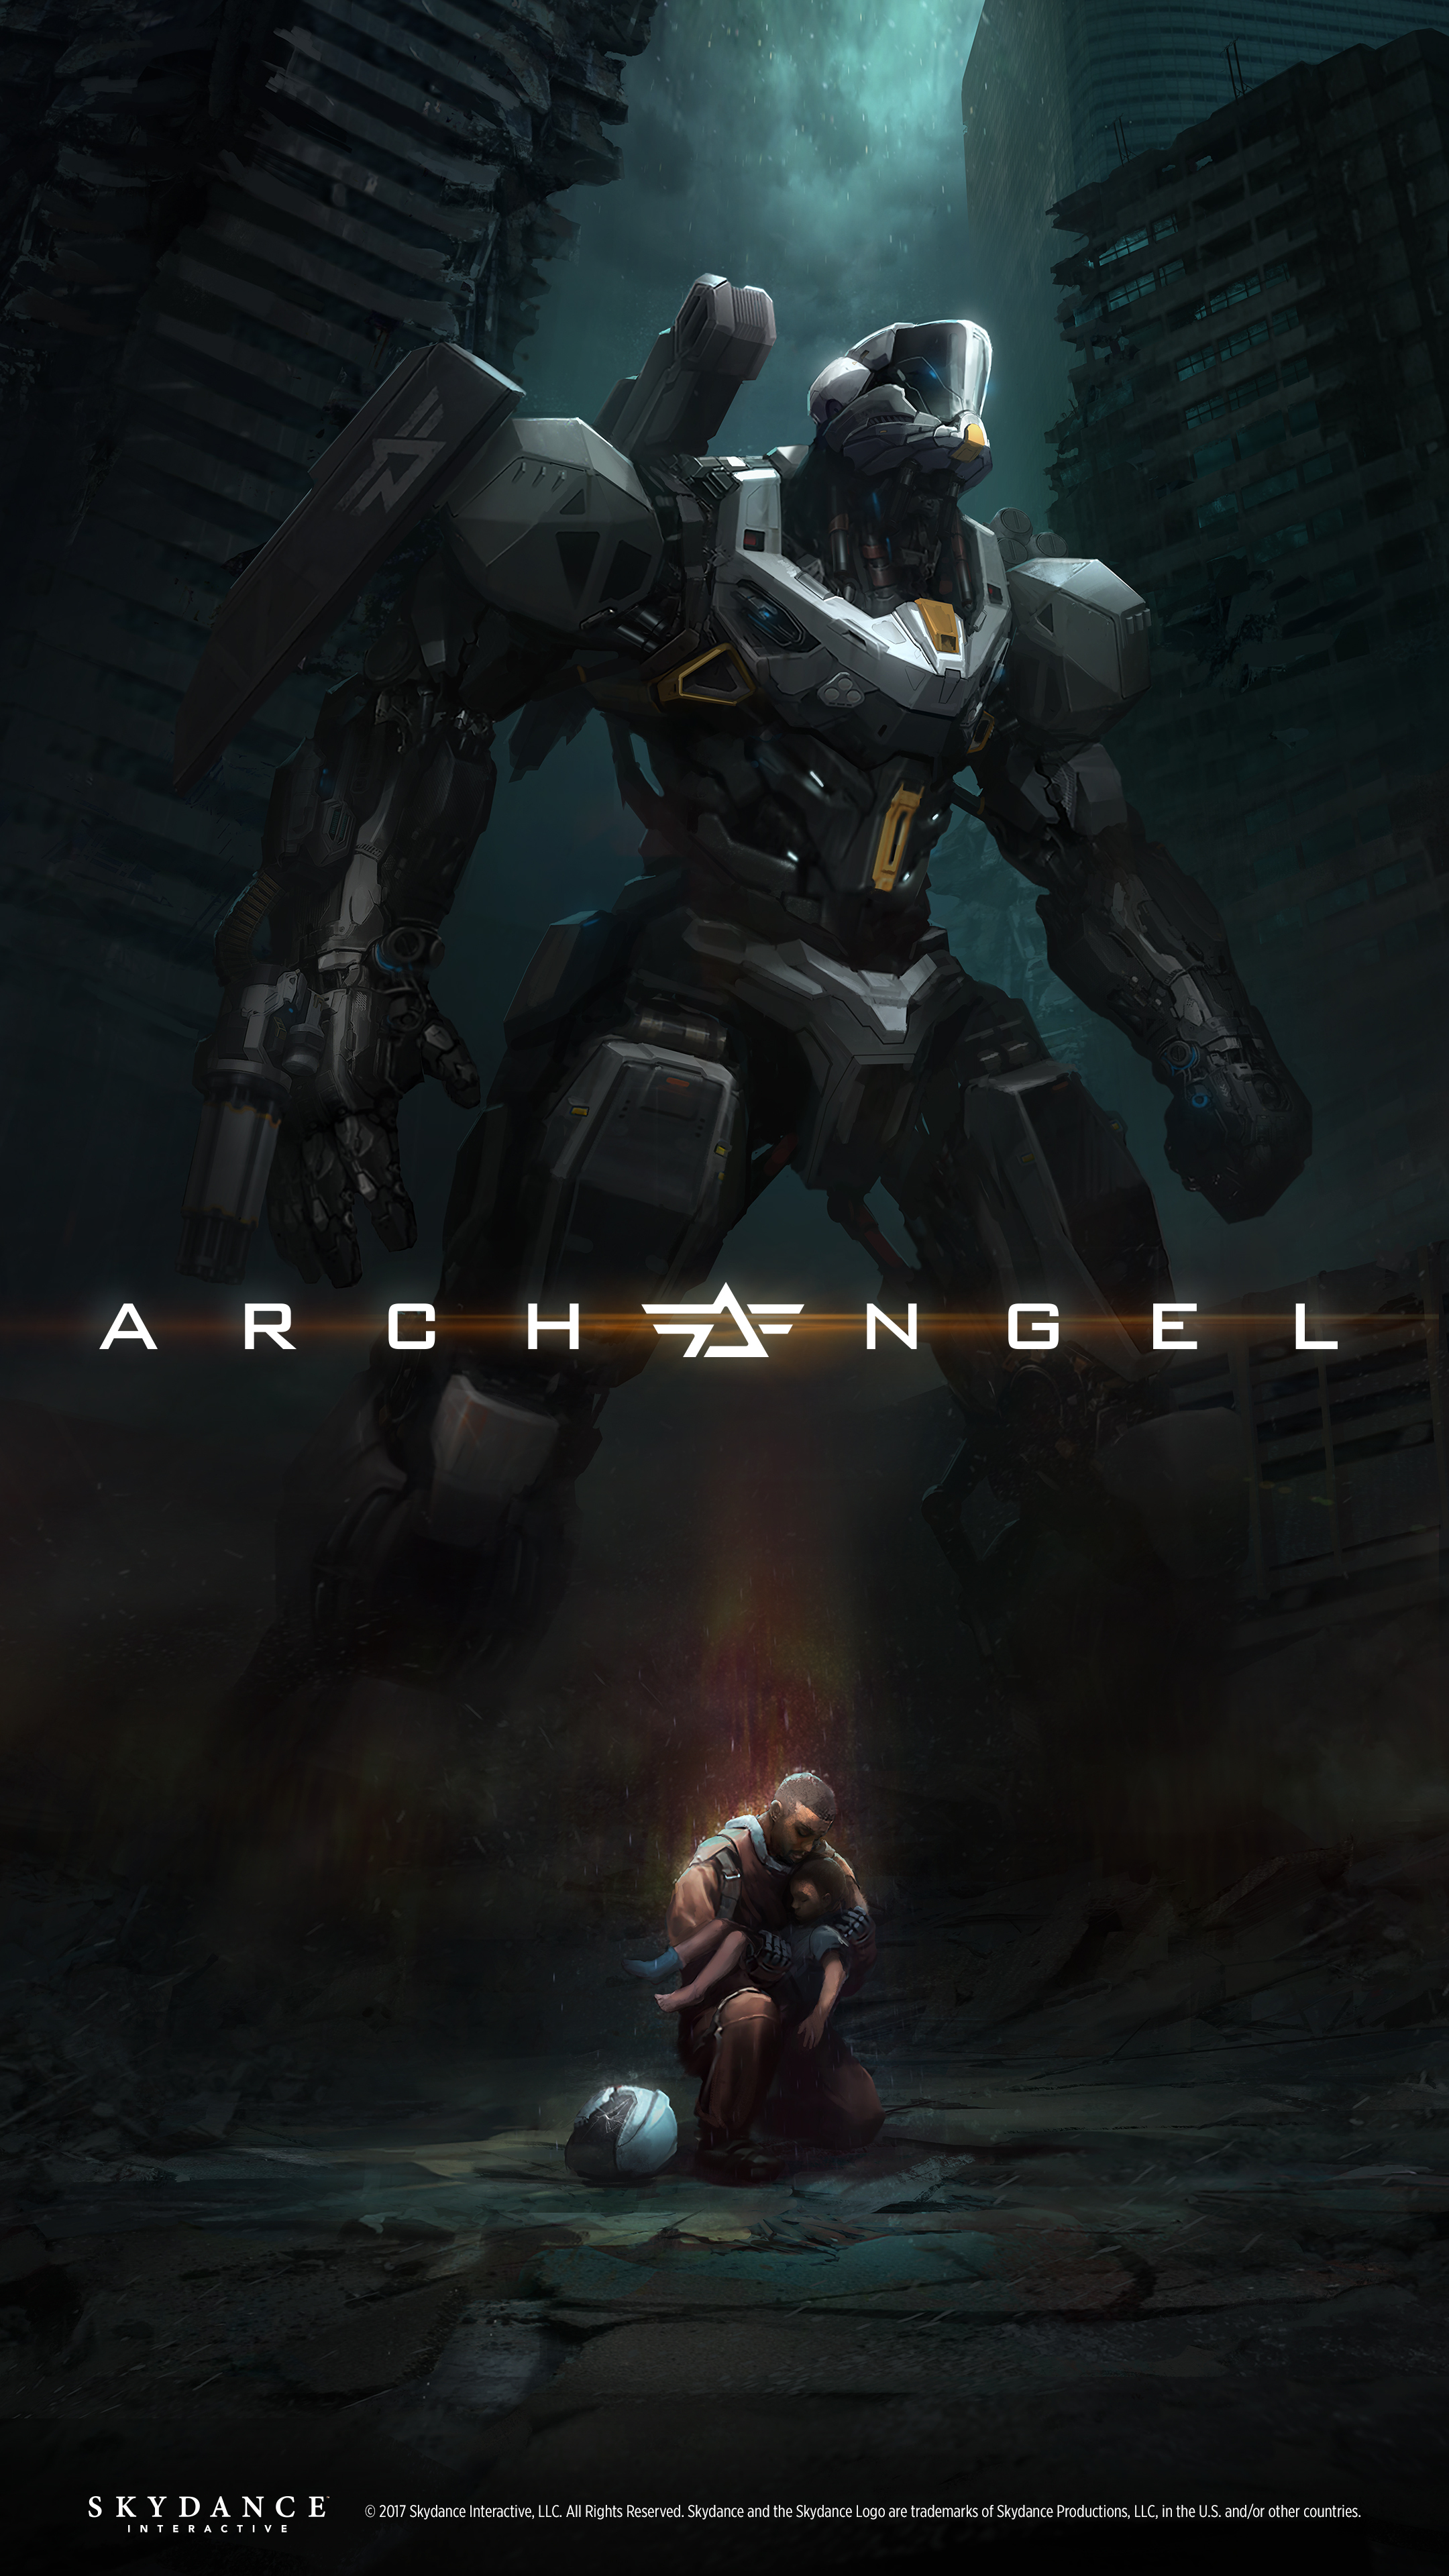 Archangel Poster (Graphic: Business Wire)